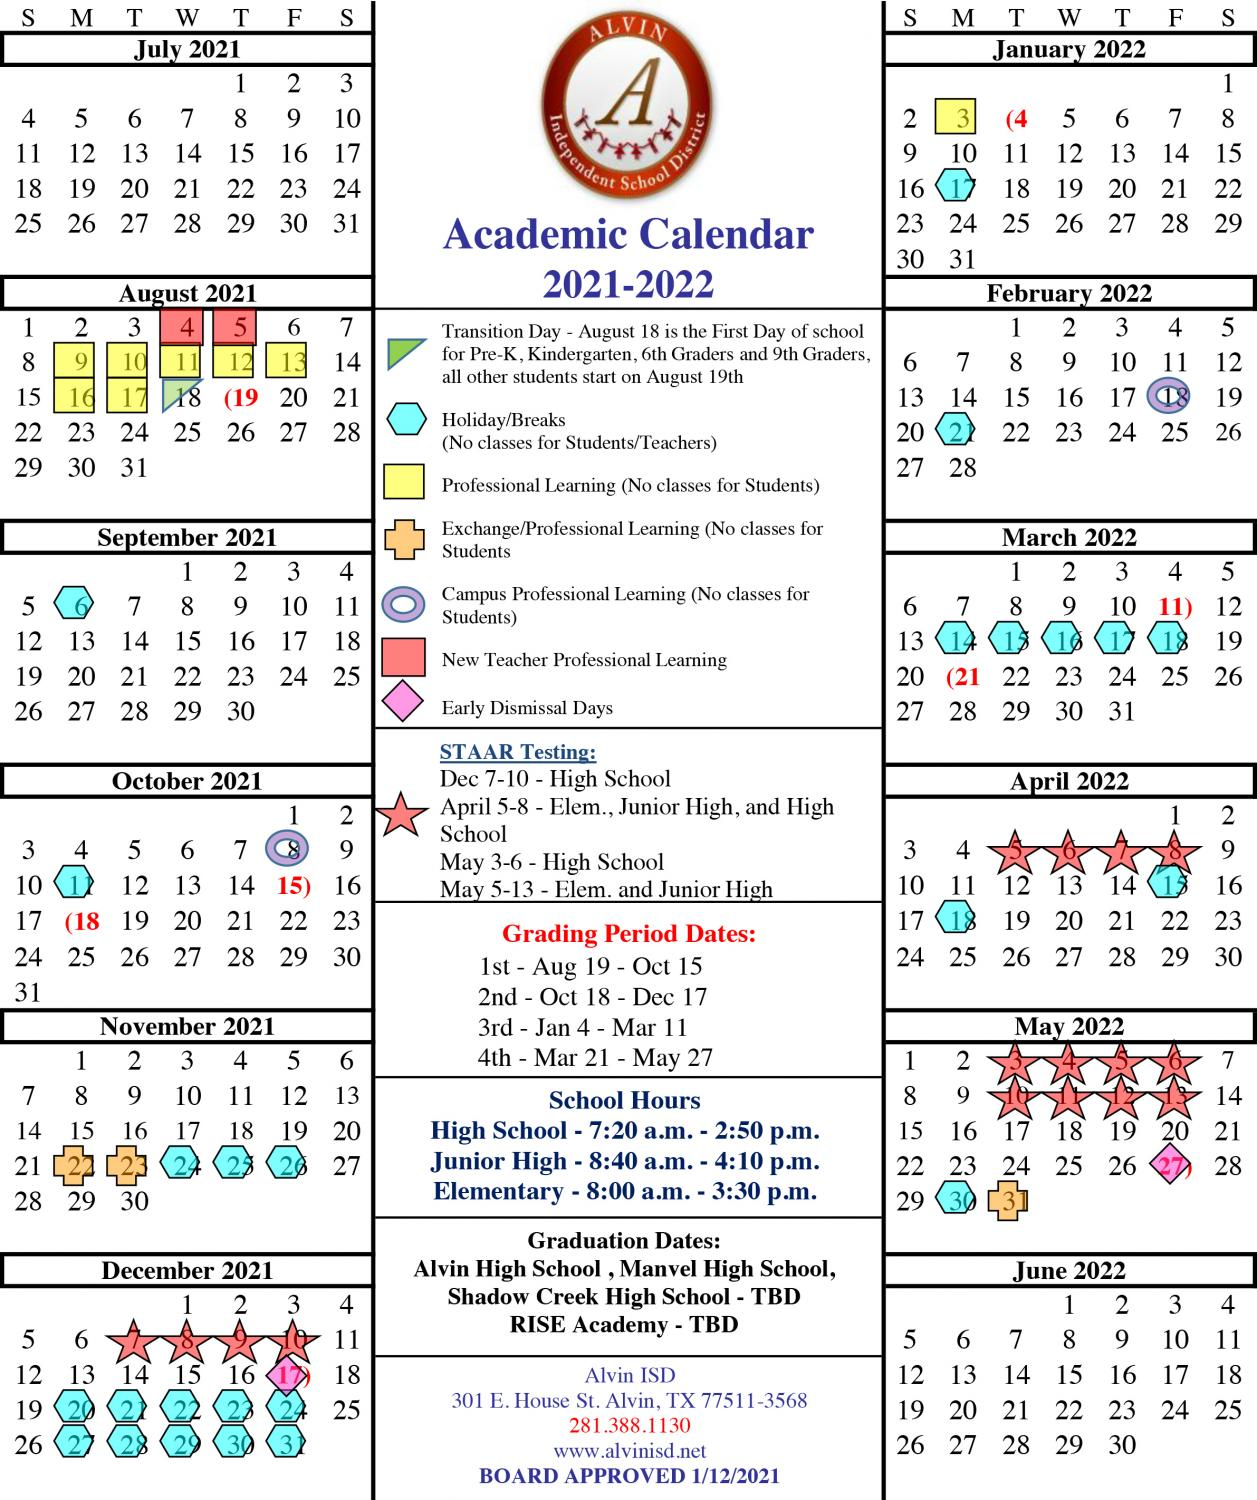 Frisco Isd 2022 Calendar.F R I S C O I S D 2 1 2 2 C A L E N D A R Zonealarm Results